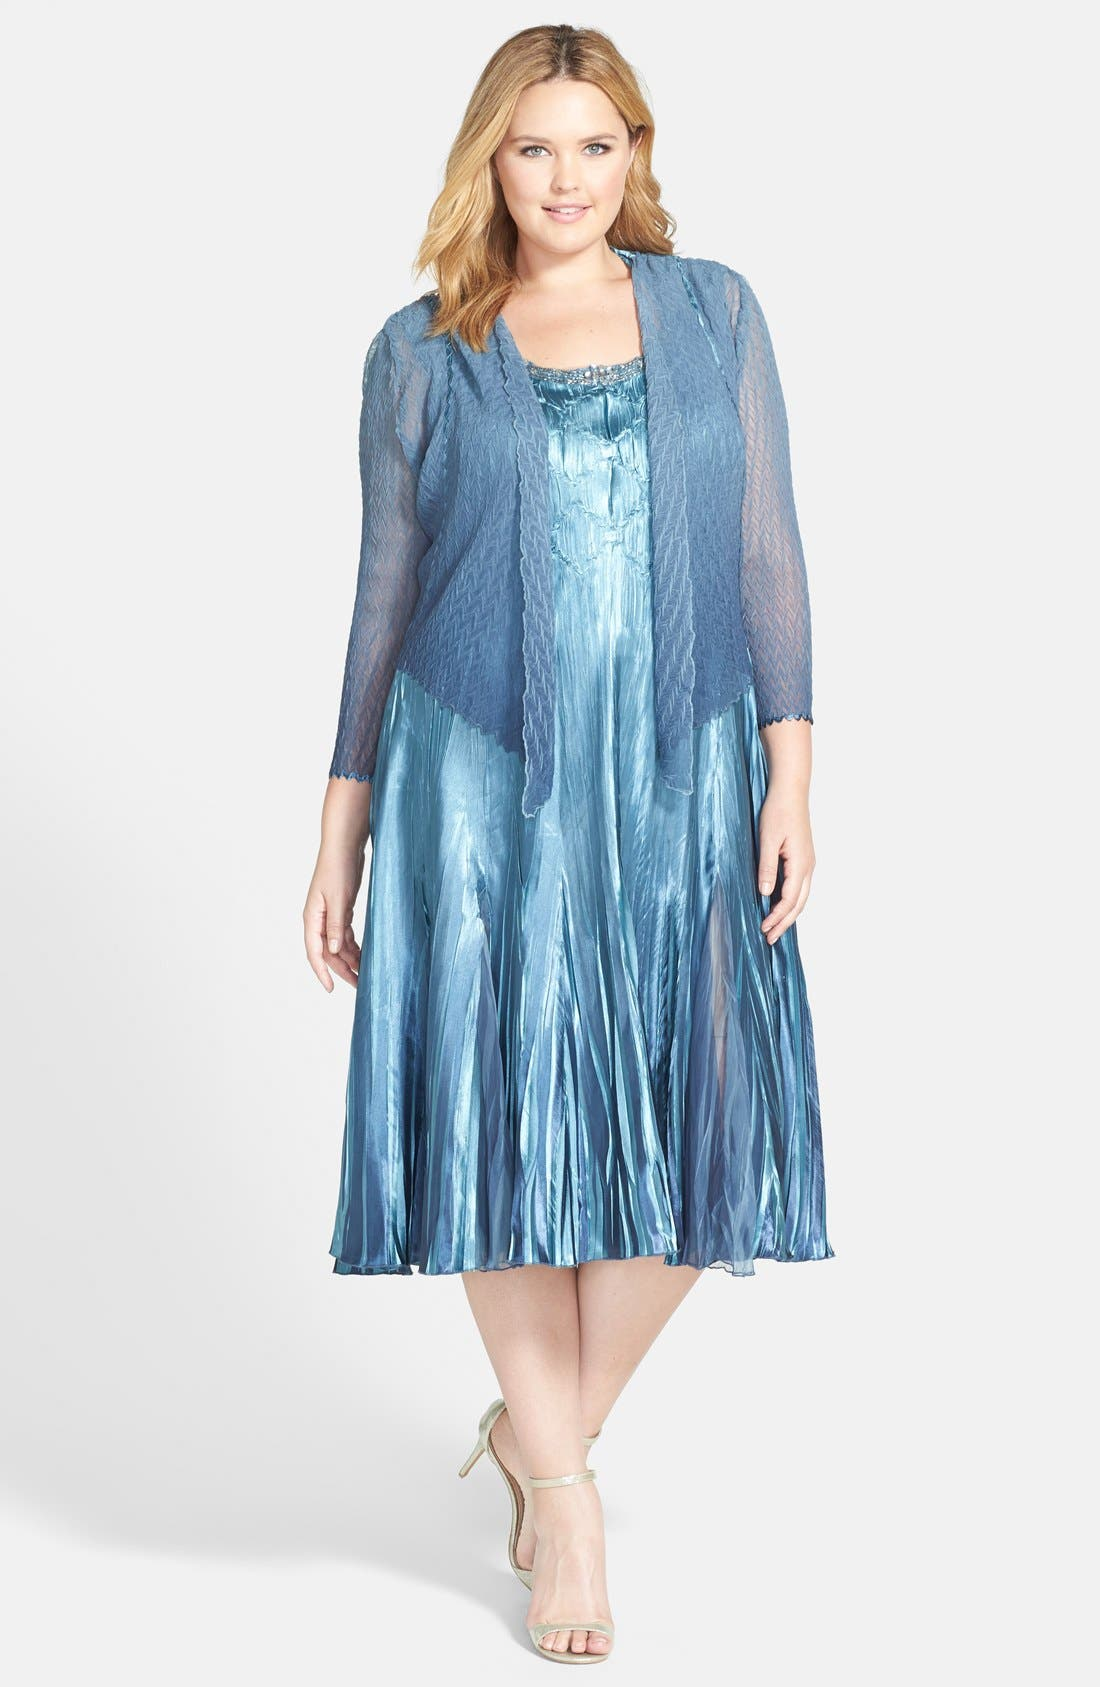 Embellished Charmeuse & Chiffon Dress with Jacket,                             Main thumbnail 1, color,                             Silver/ Blue Ombre